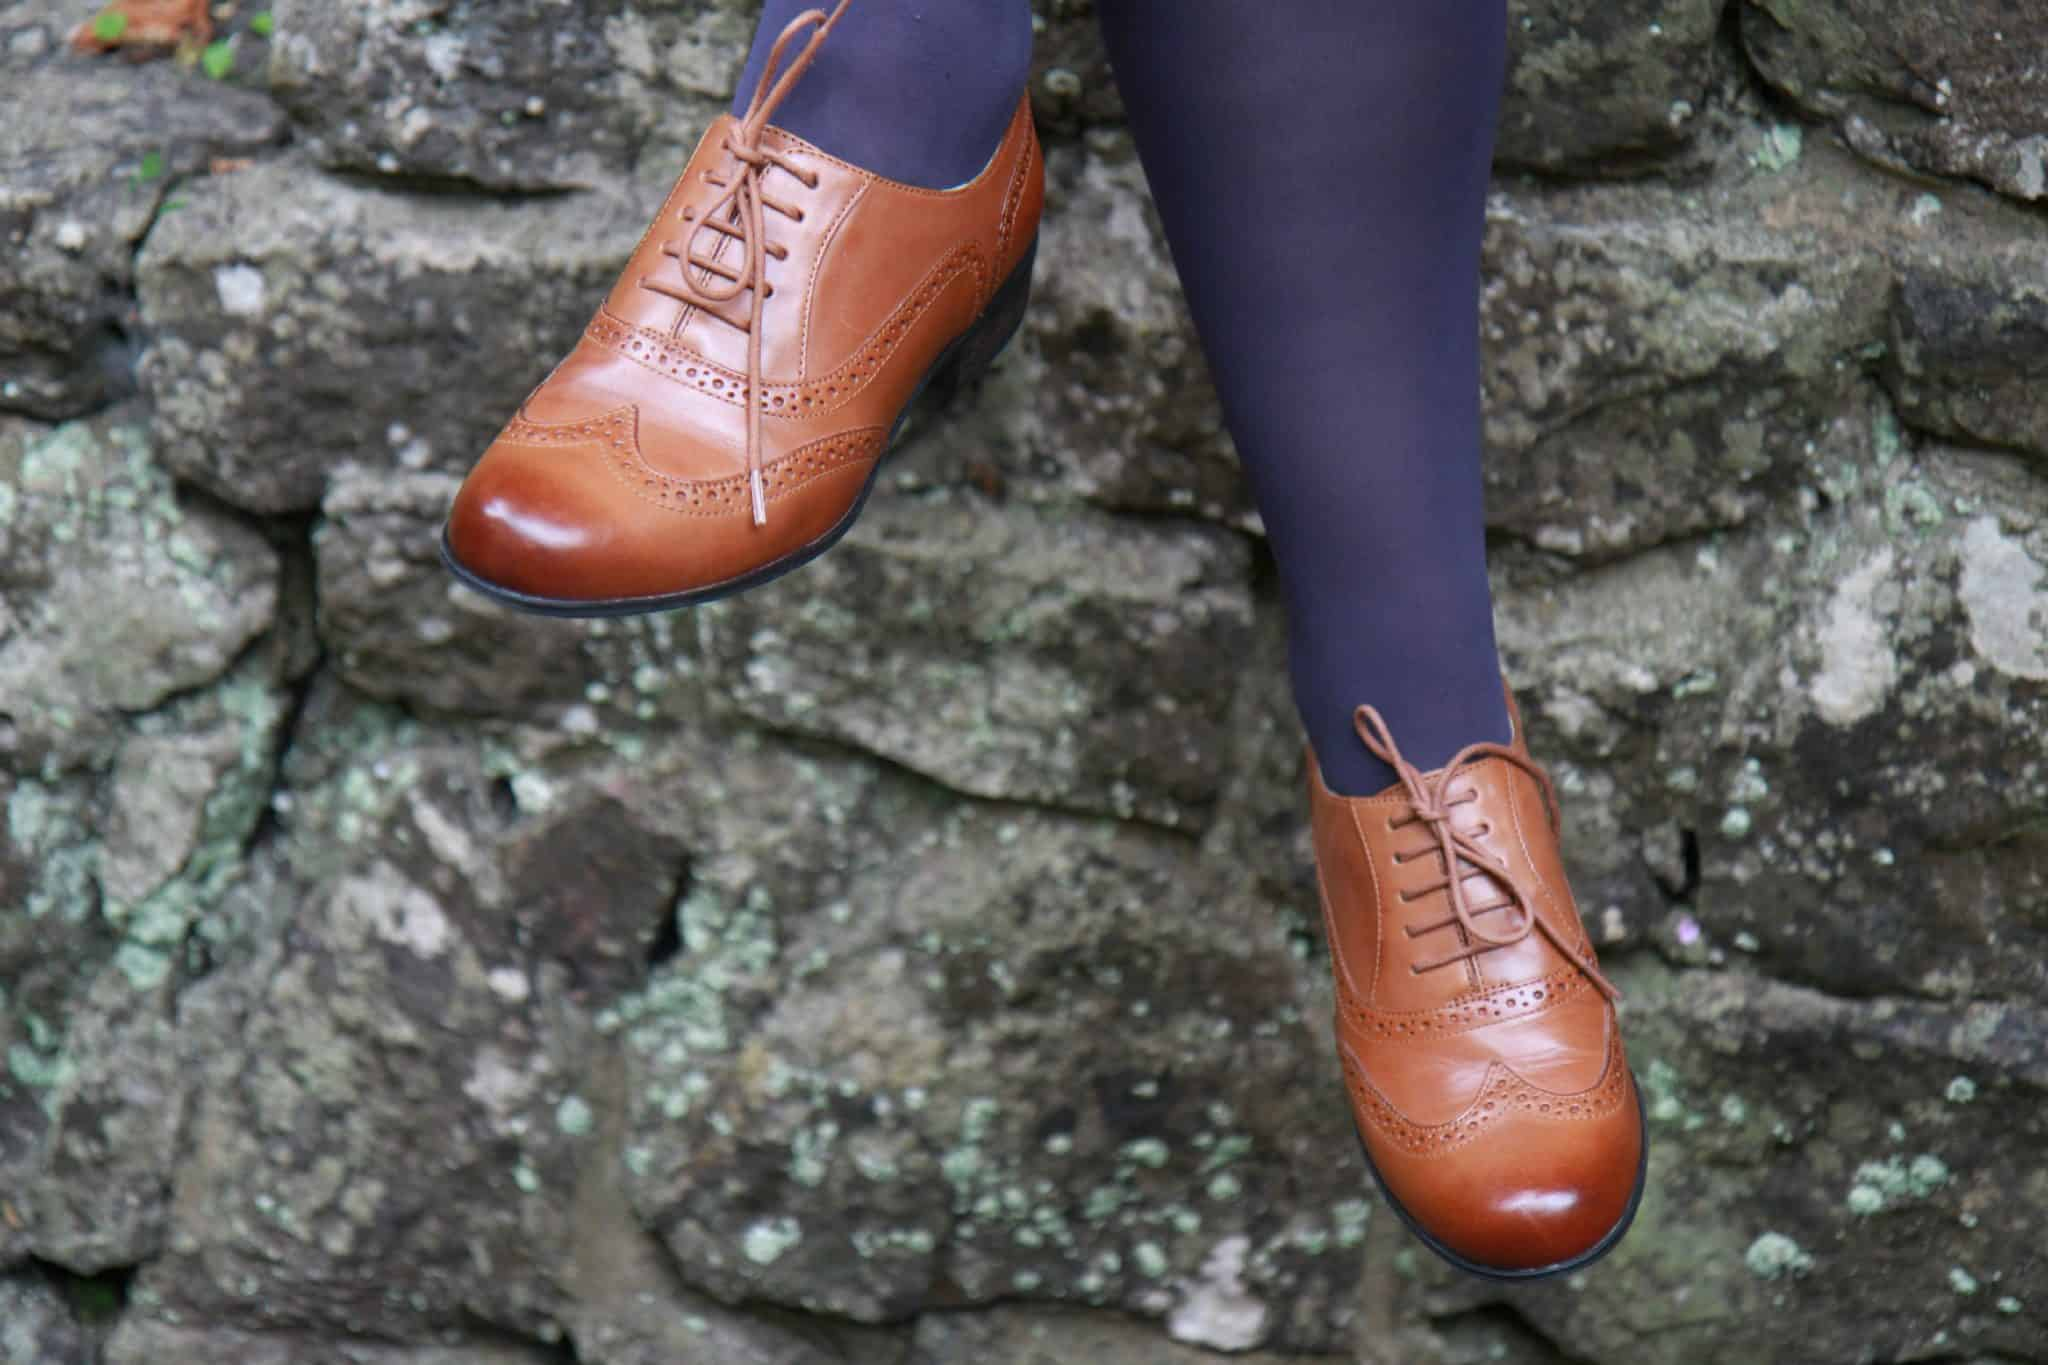 Ladies shoes from Brantano